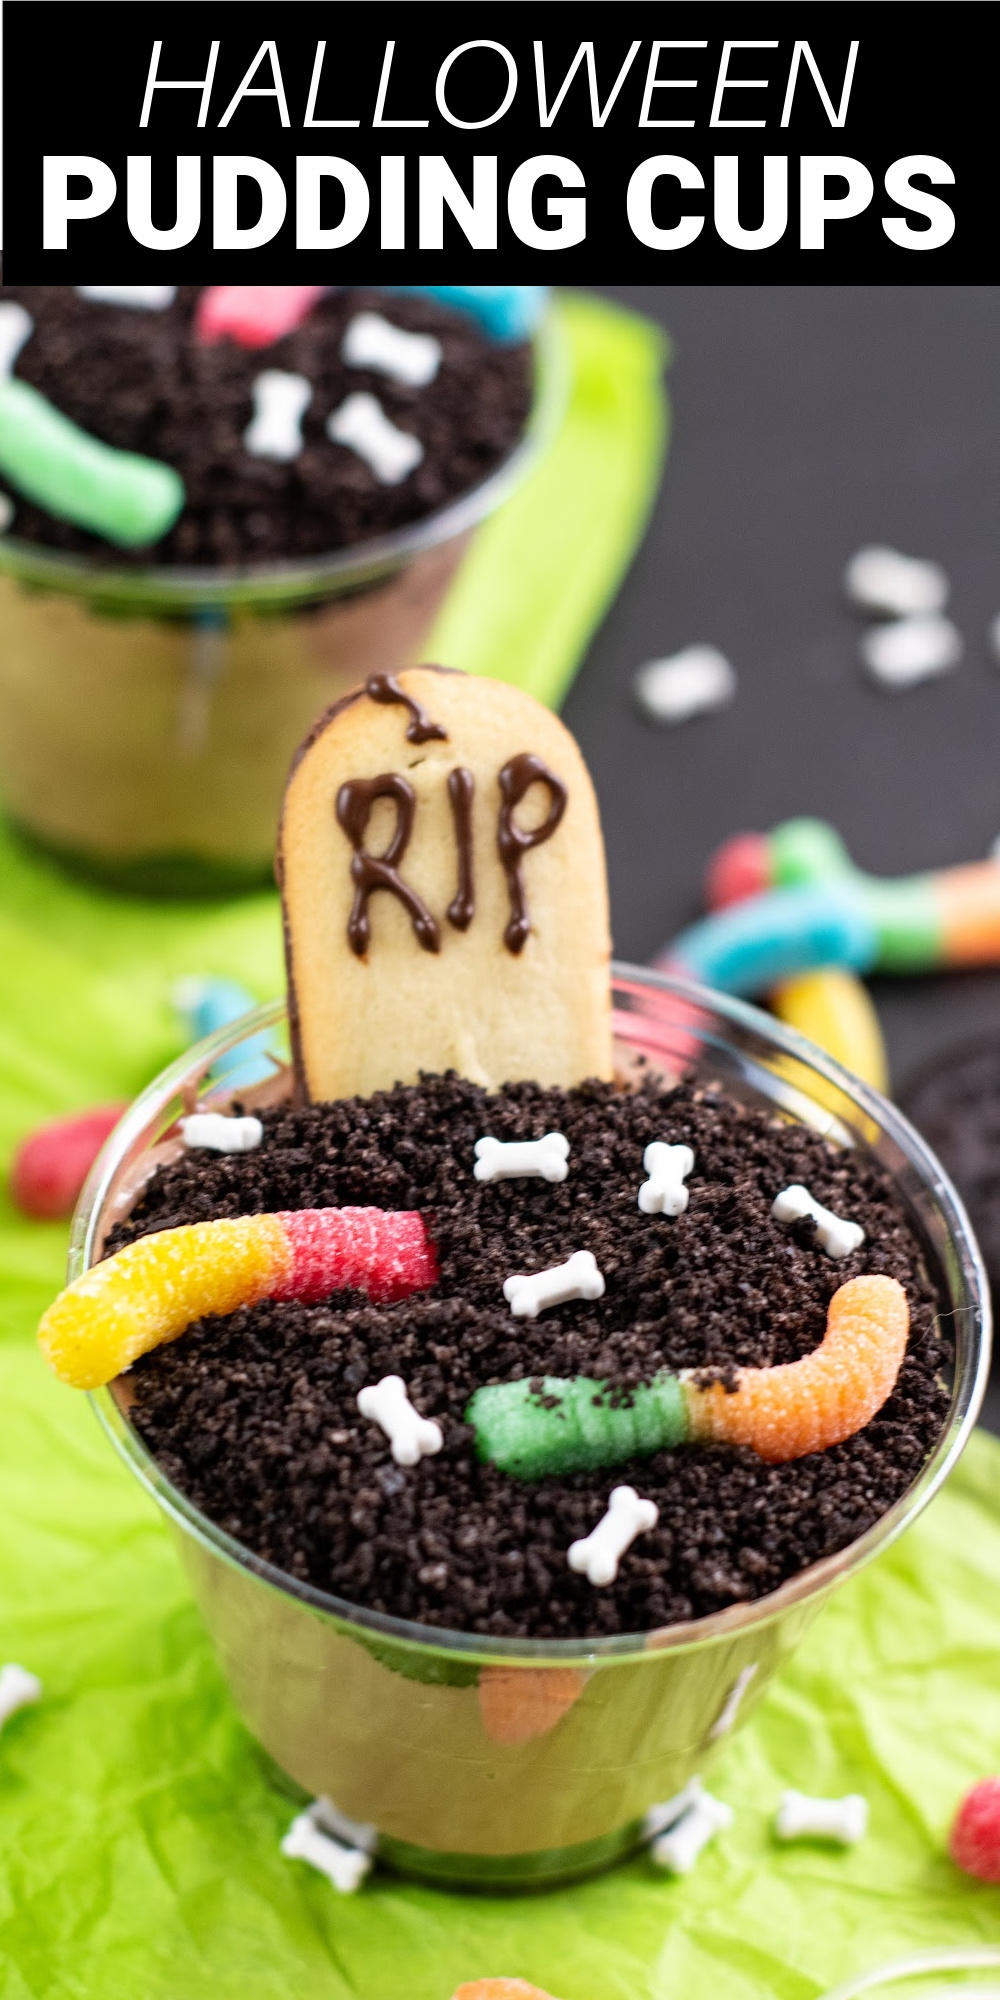 Graveyard Dirt Cups are a fun dessert perfect for a Halloween party or a silly treat at home. These pudding cups are filled with crushed Oreos, chocolate pudding, Cool Whip, and fun treats on top.